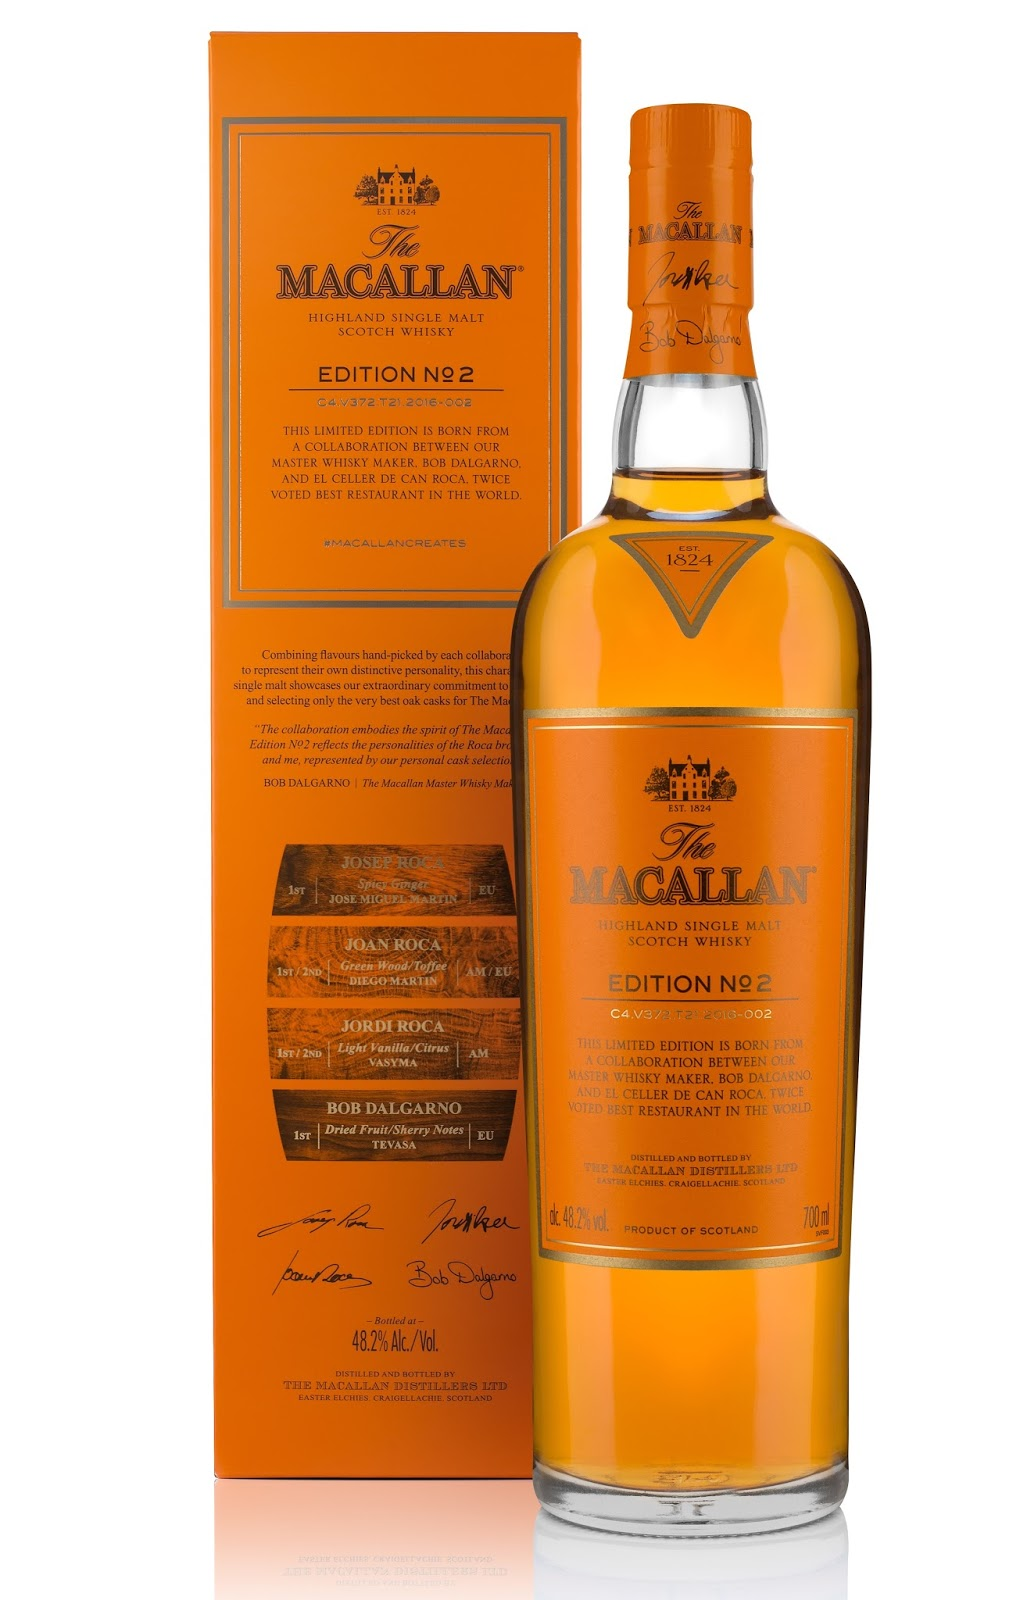 The Macallan - Edition No.2